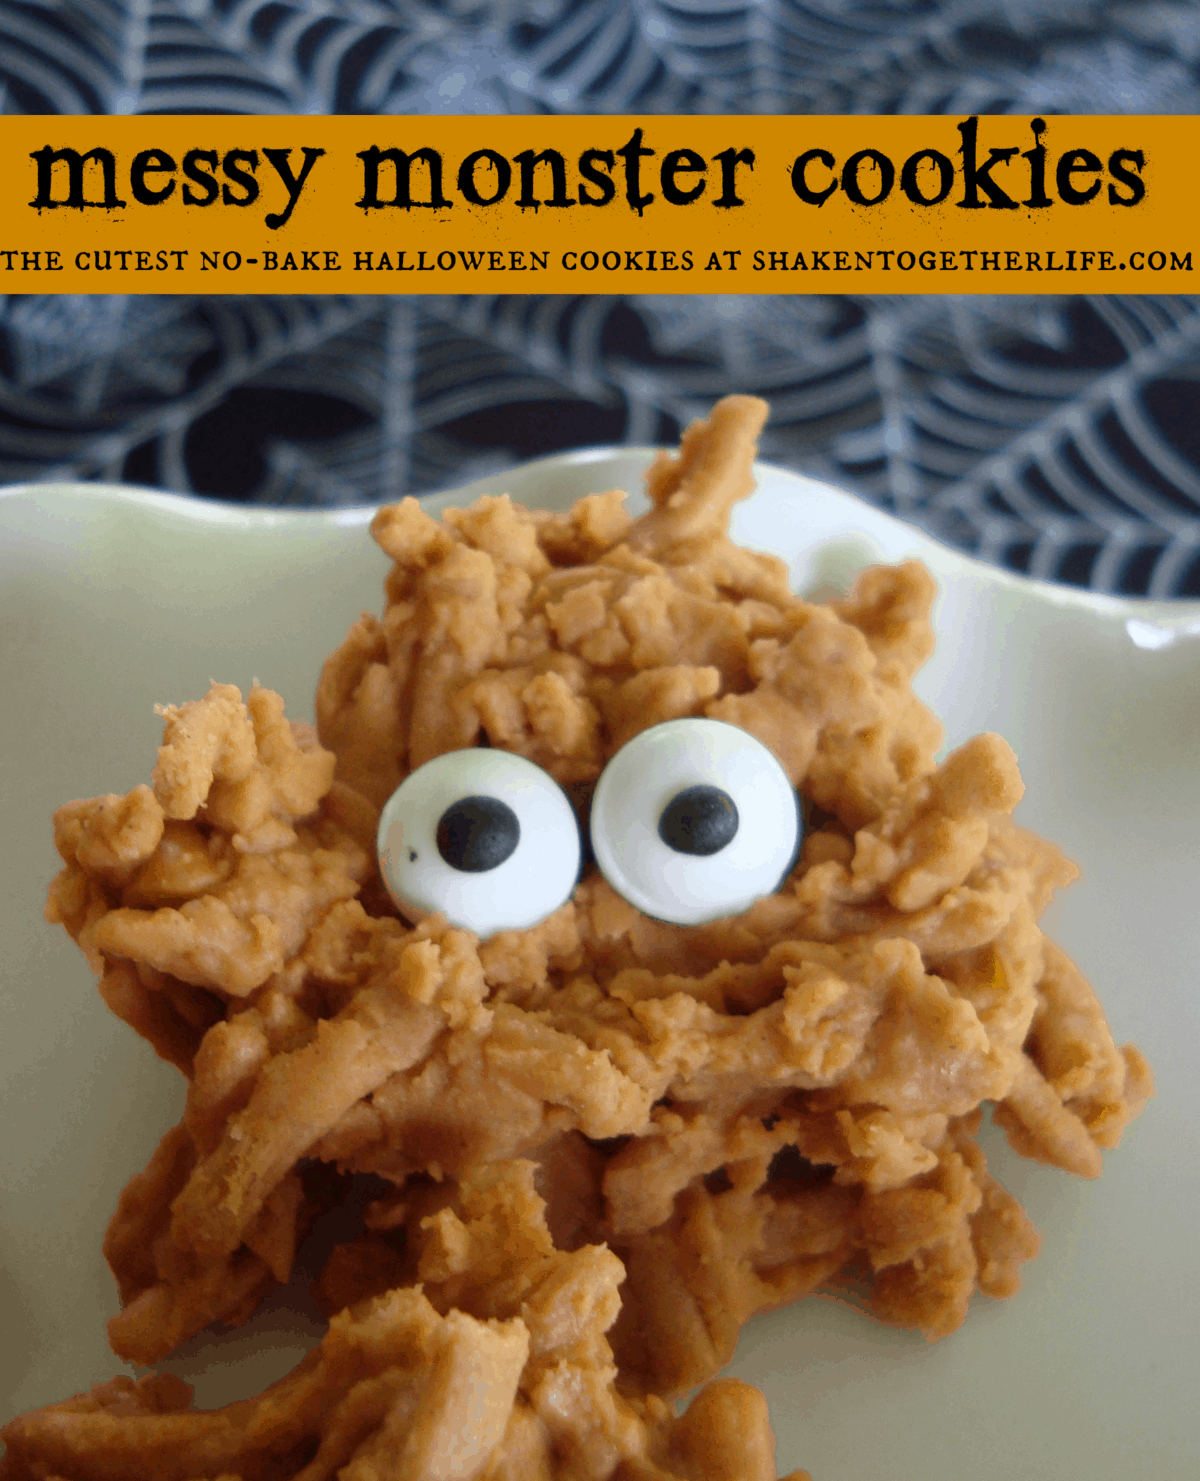 Messy monster cookies the cutest no-bake Halloween cookies at shakentogetherlife.com